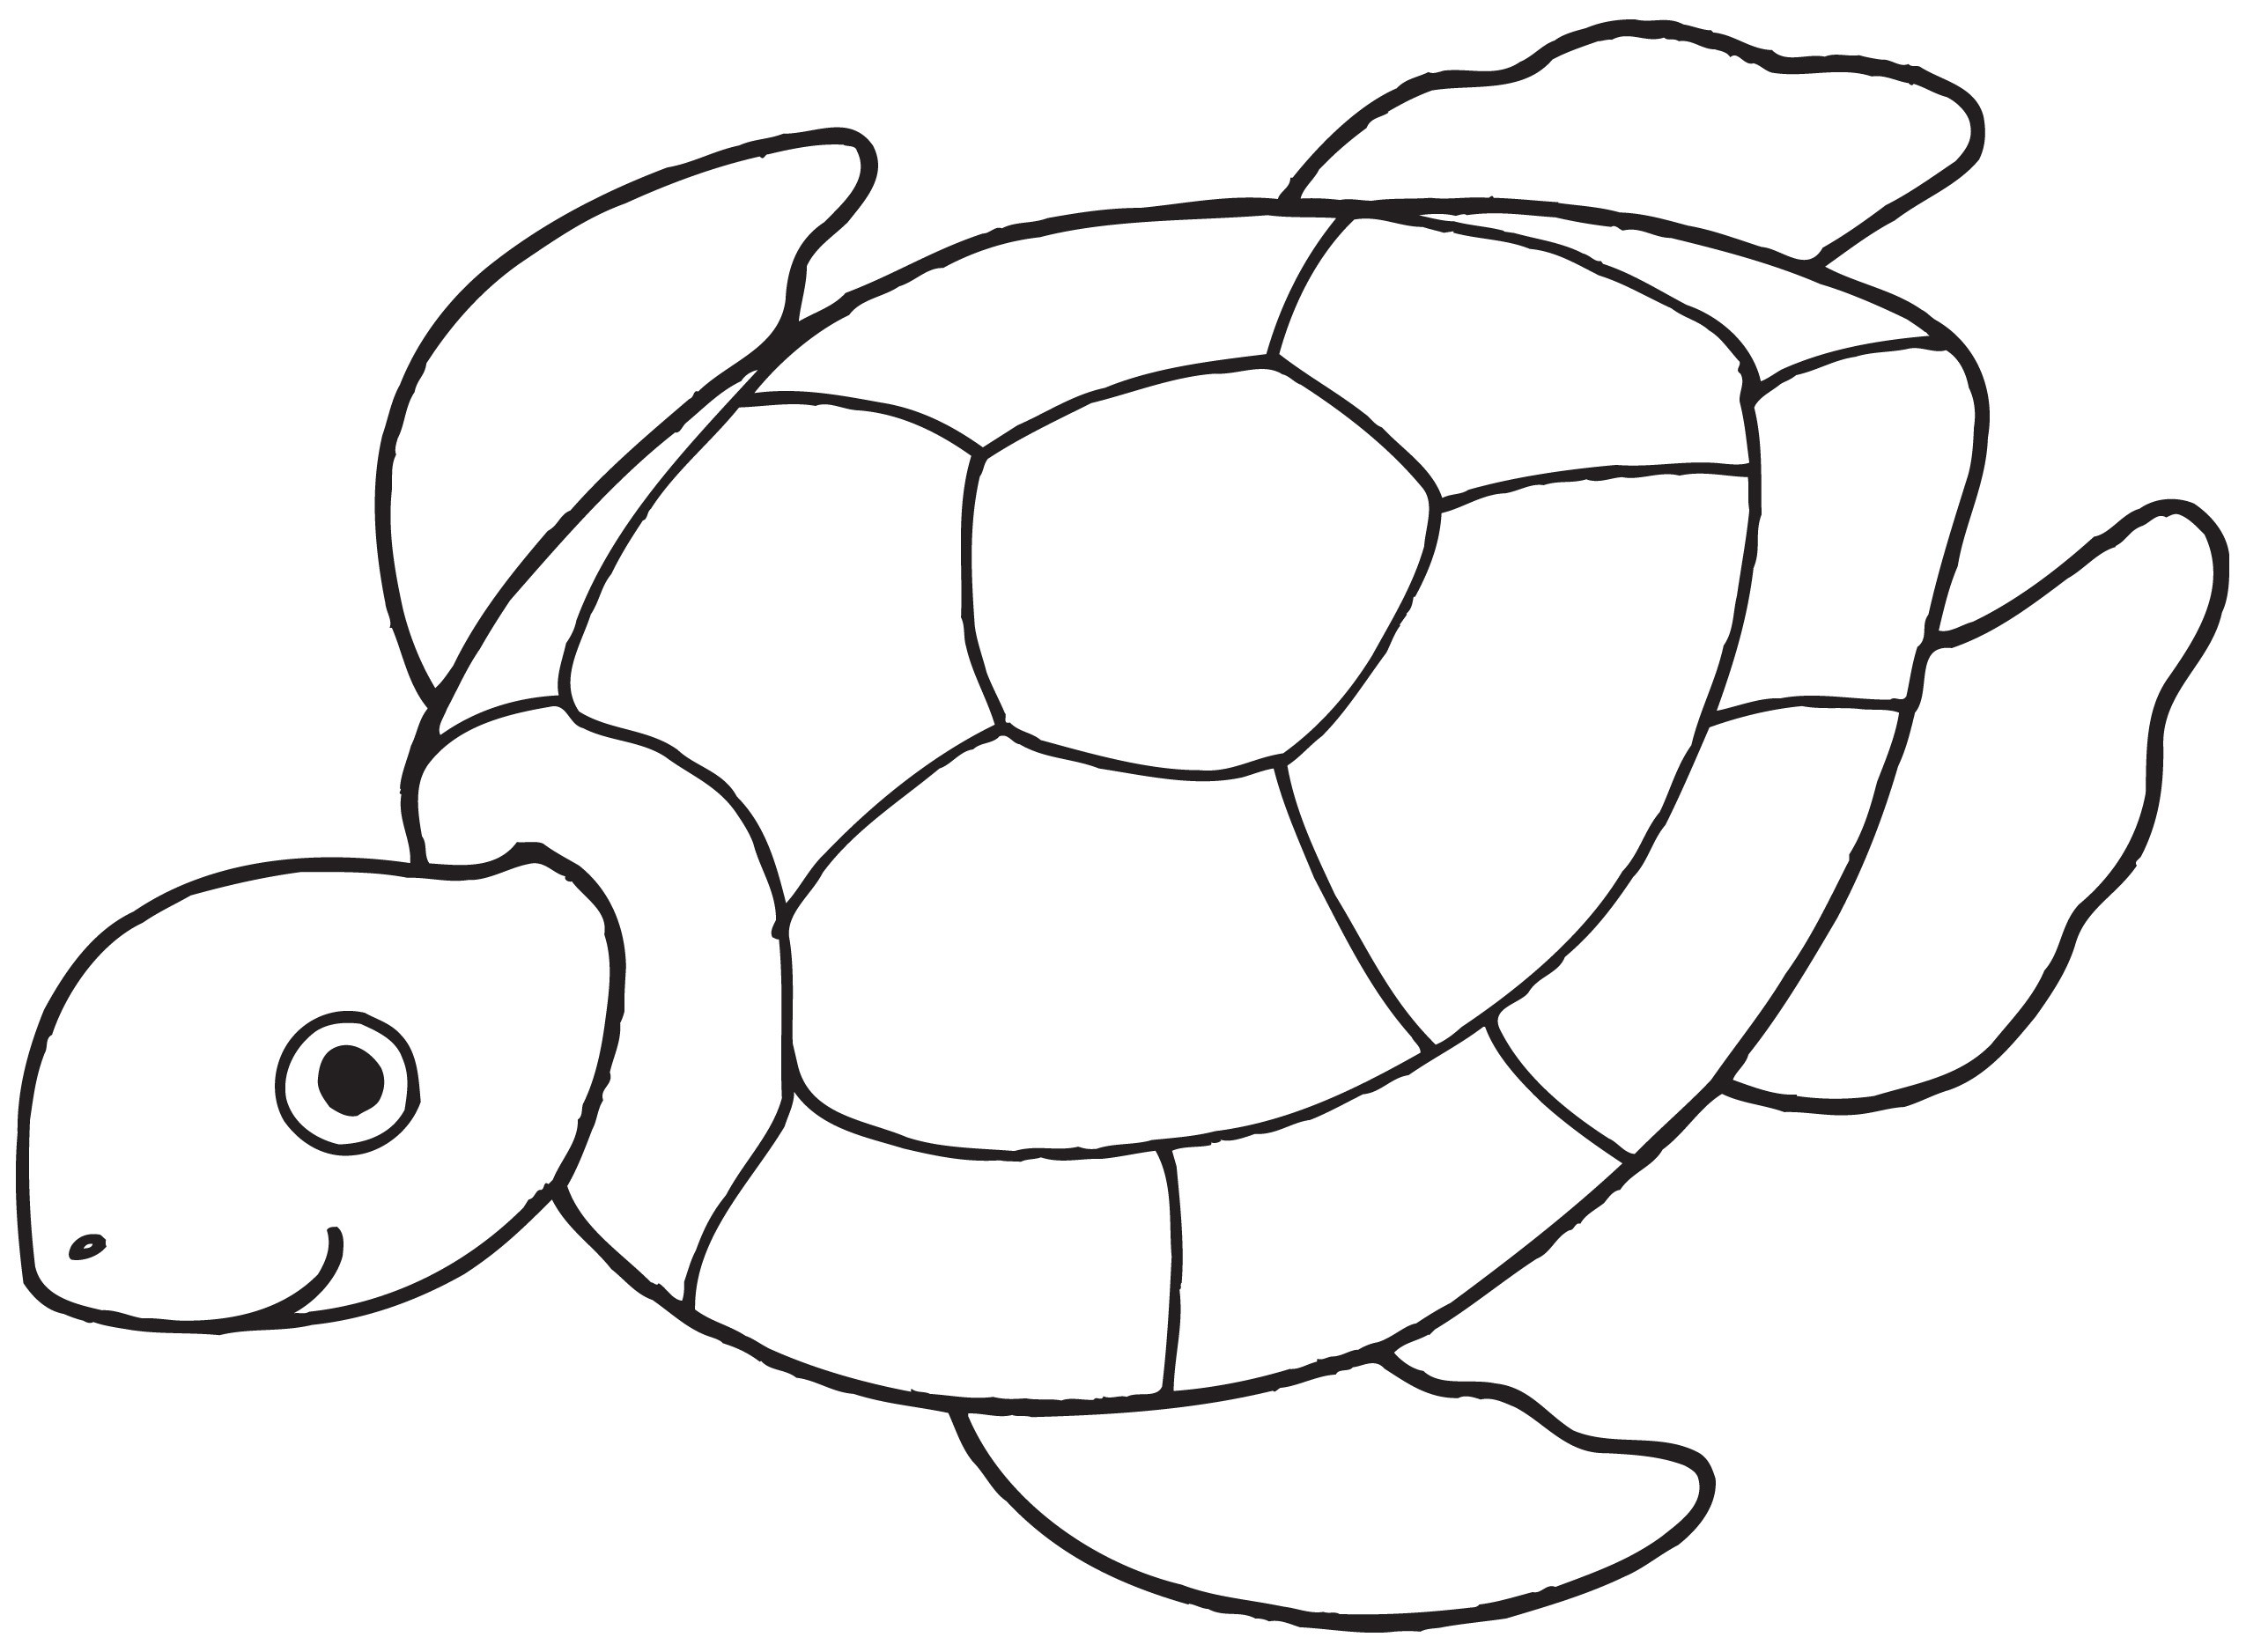 Turtle Outline Clipart Black And White